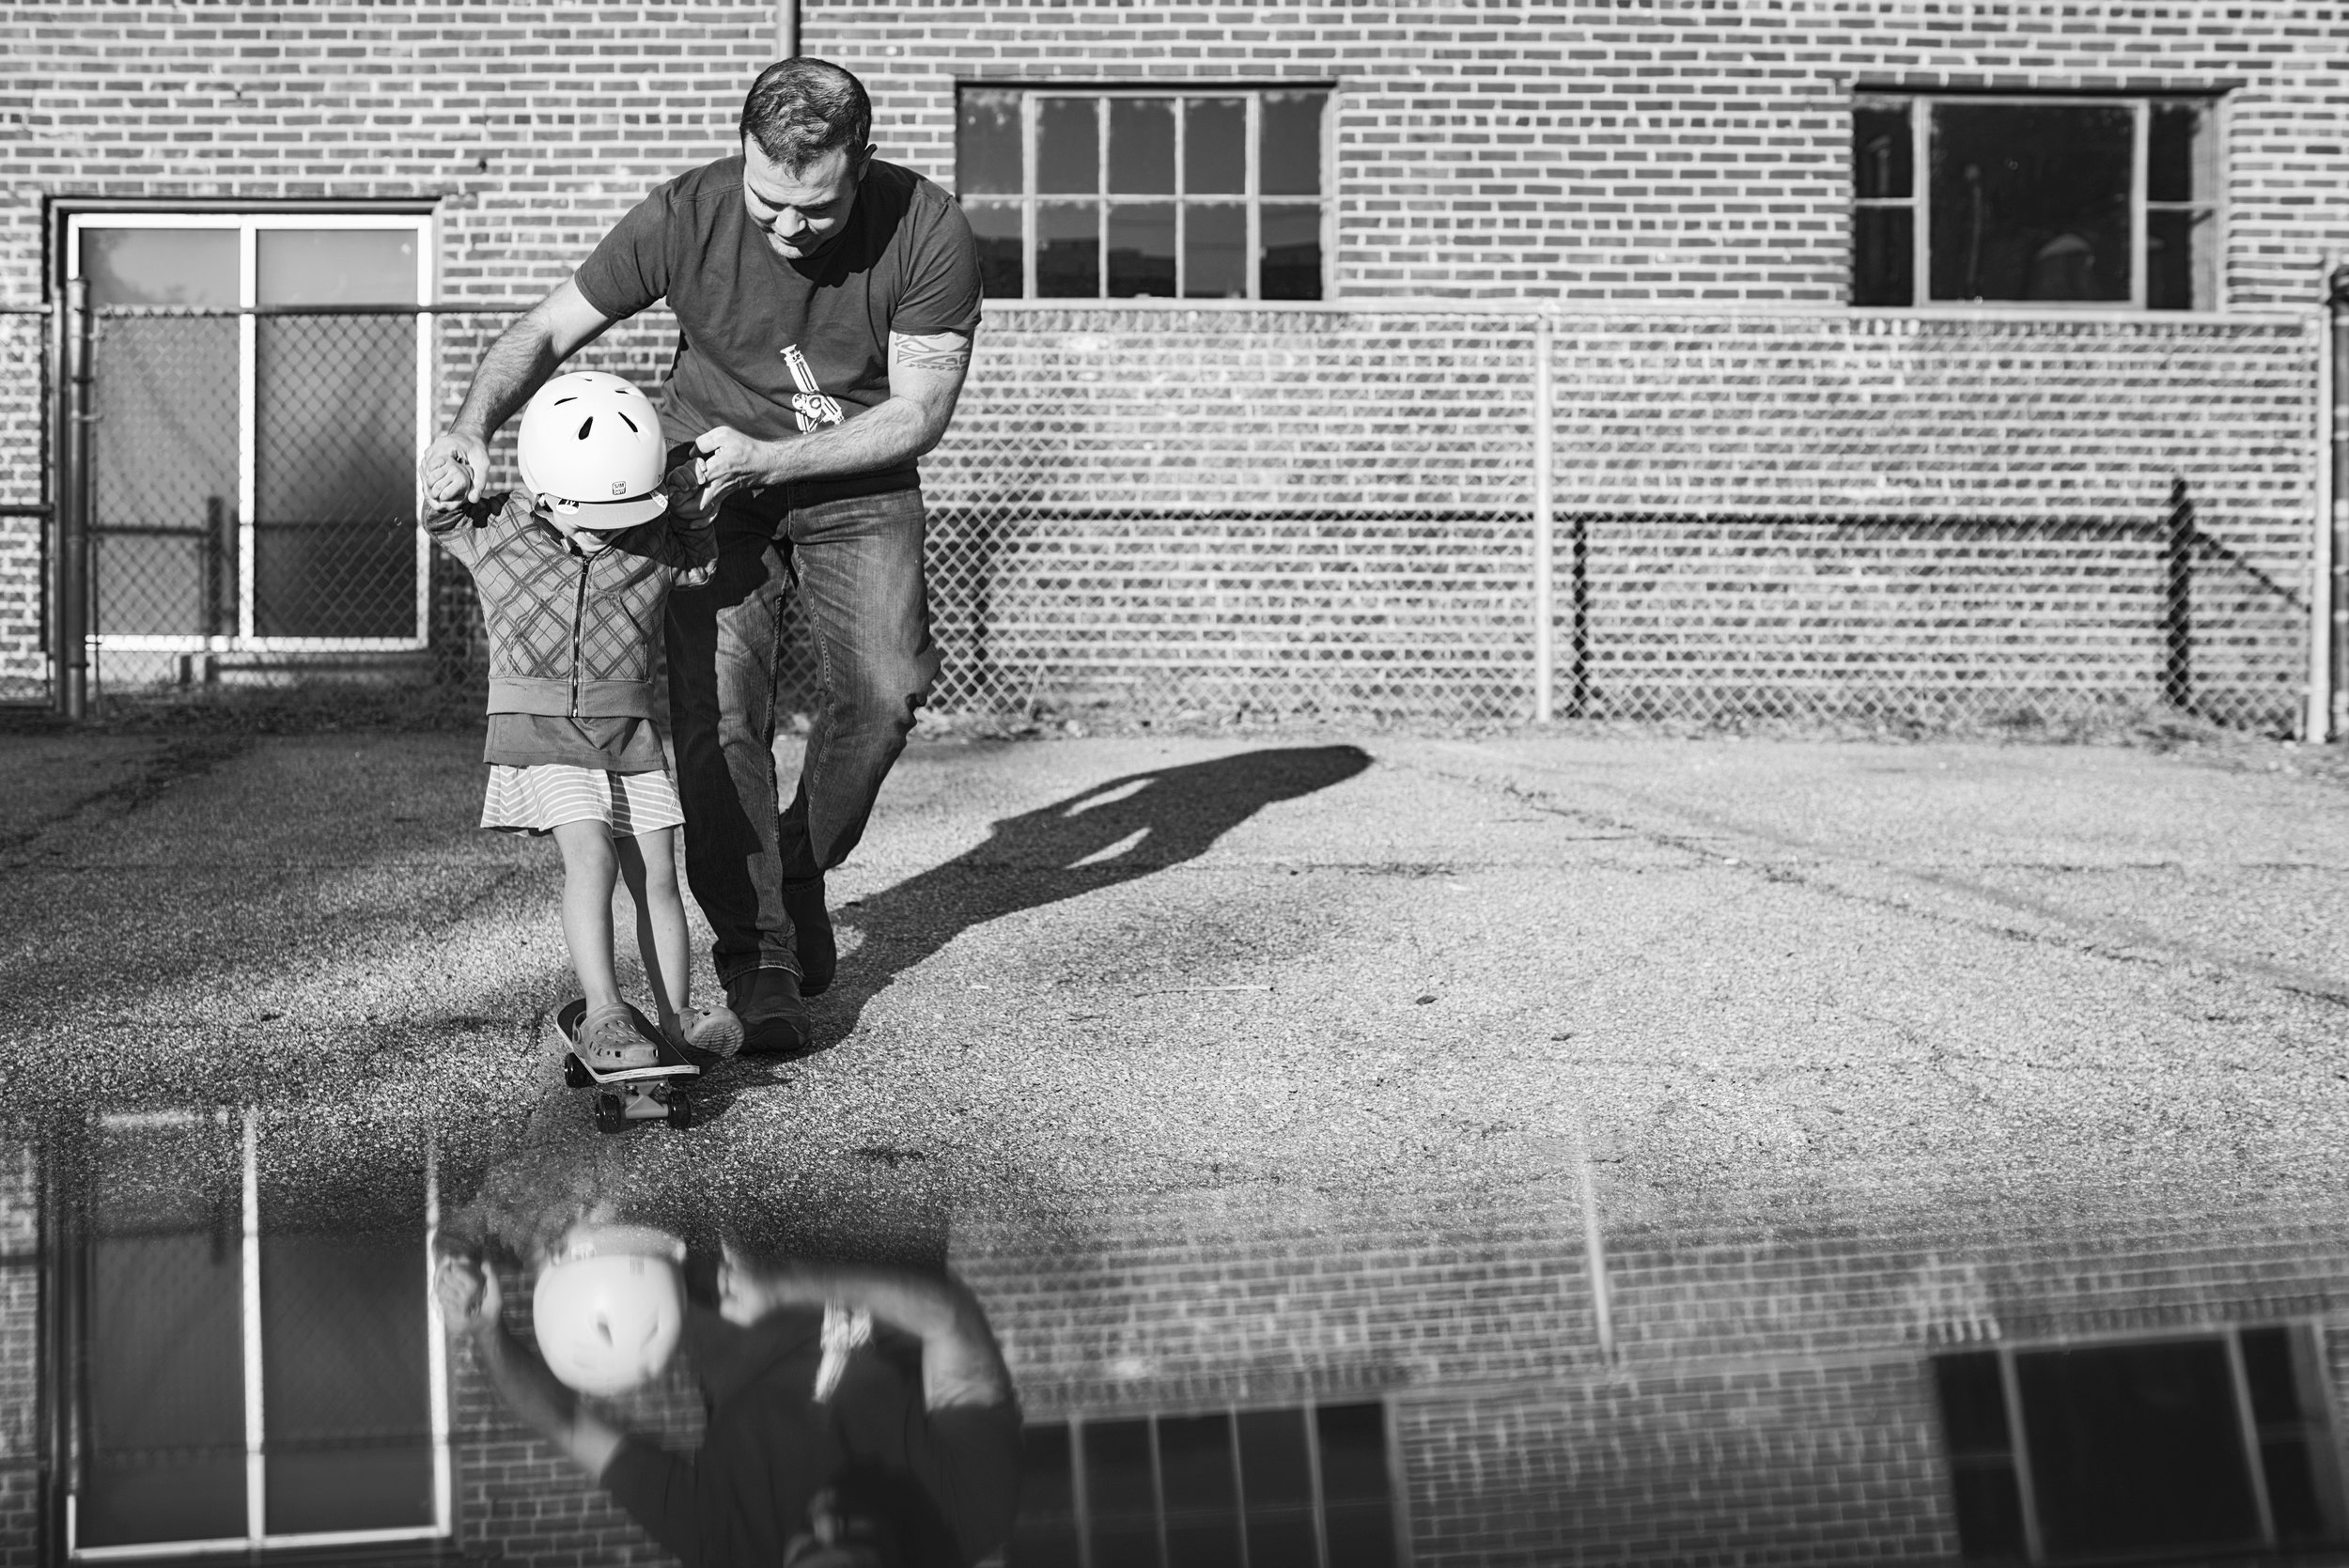 Nicoleinbold, a Richmond family photographer lives in the city and enjoys offering documentary photography to create images of parents and their kids as seen here as dad helps his daughter skateboard.